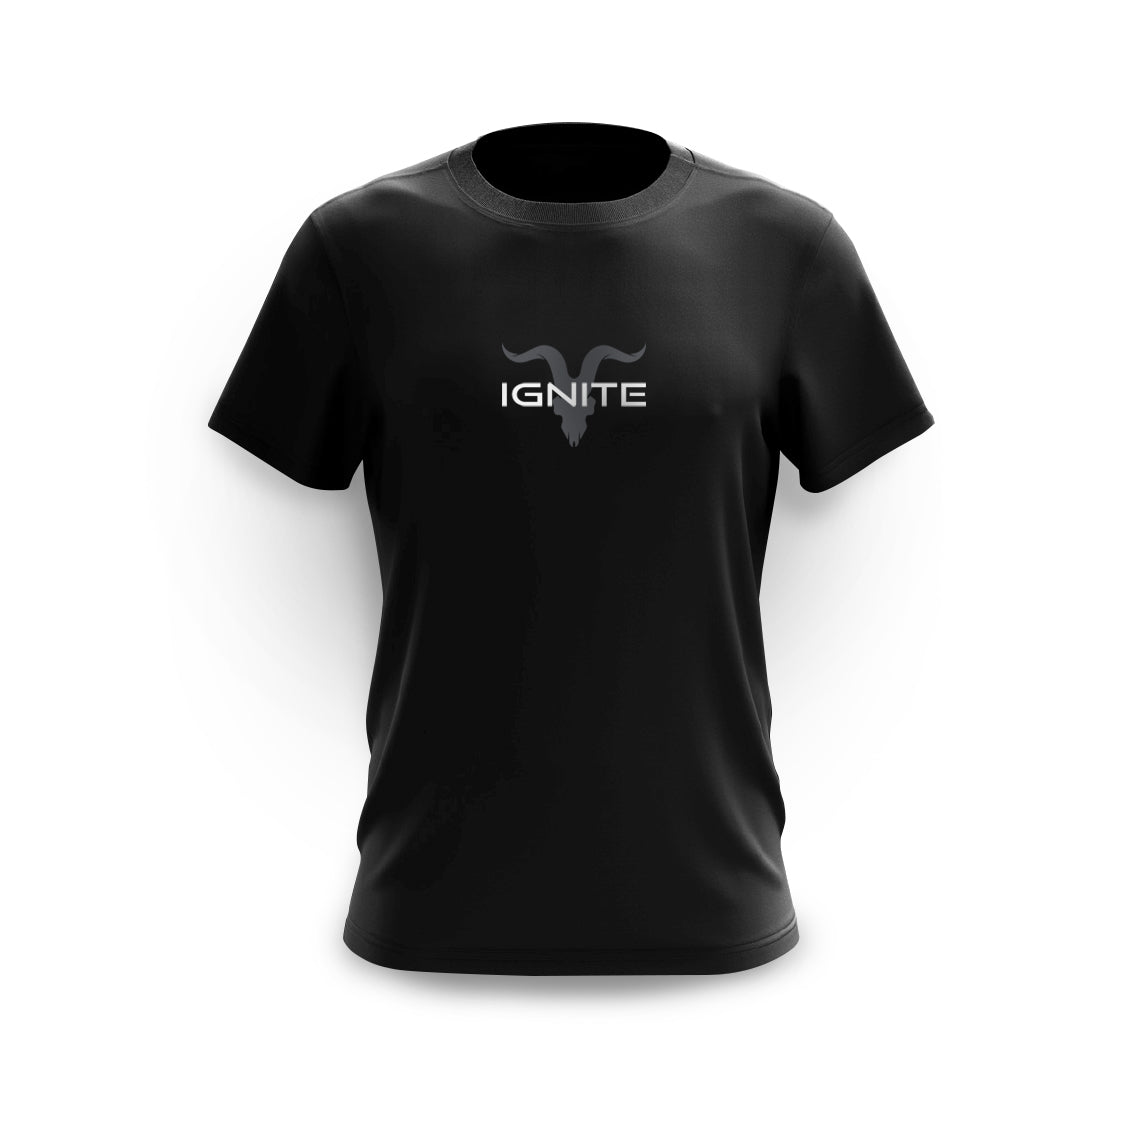 Ignite Premium Collection Men's Black & Grey Logo Tee - ignite-merch